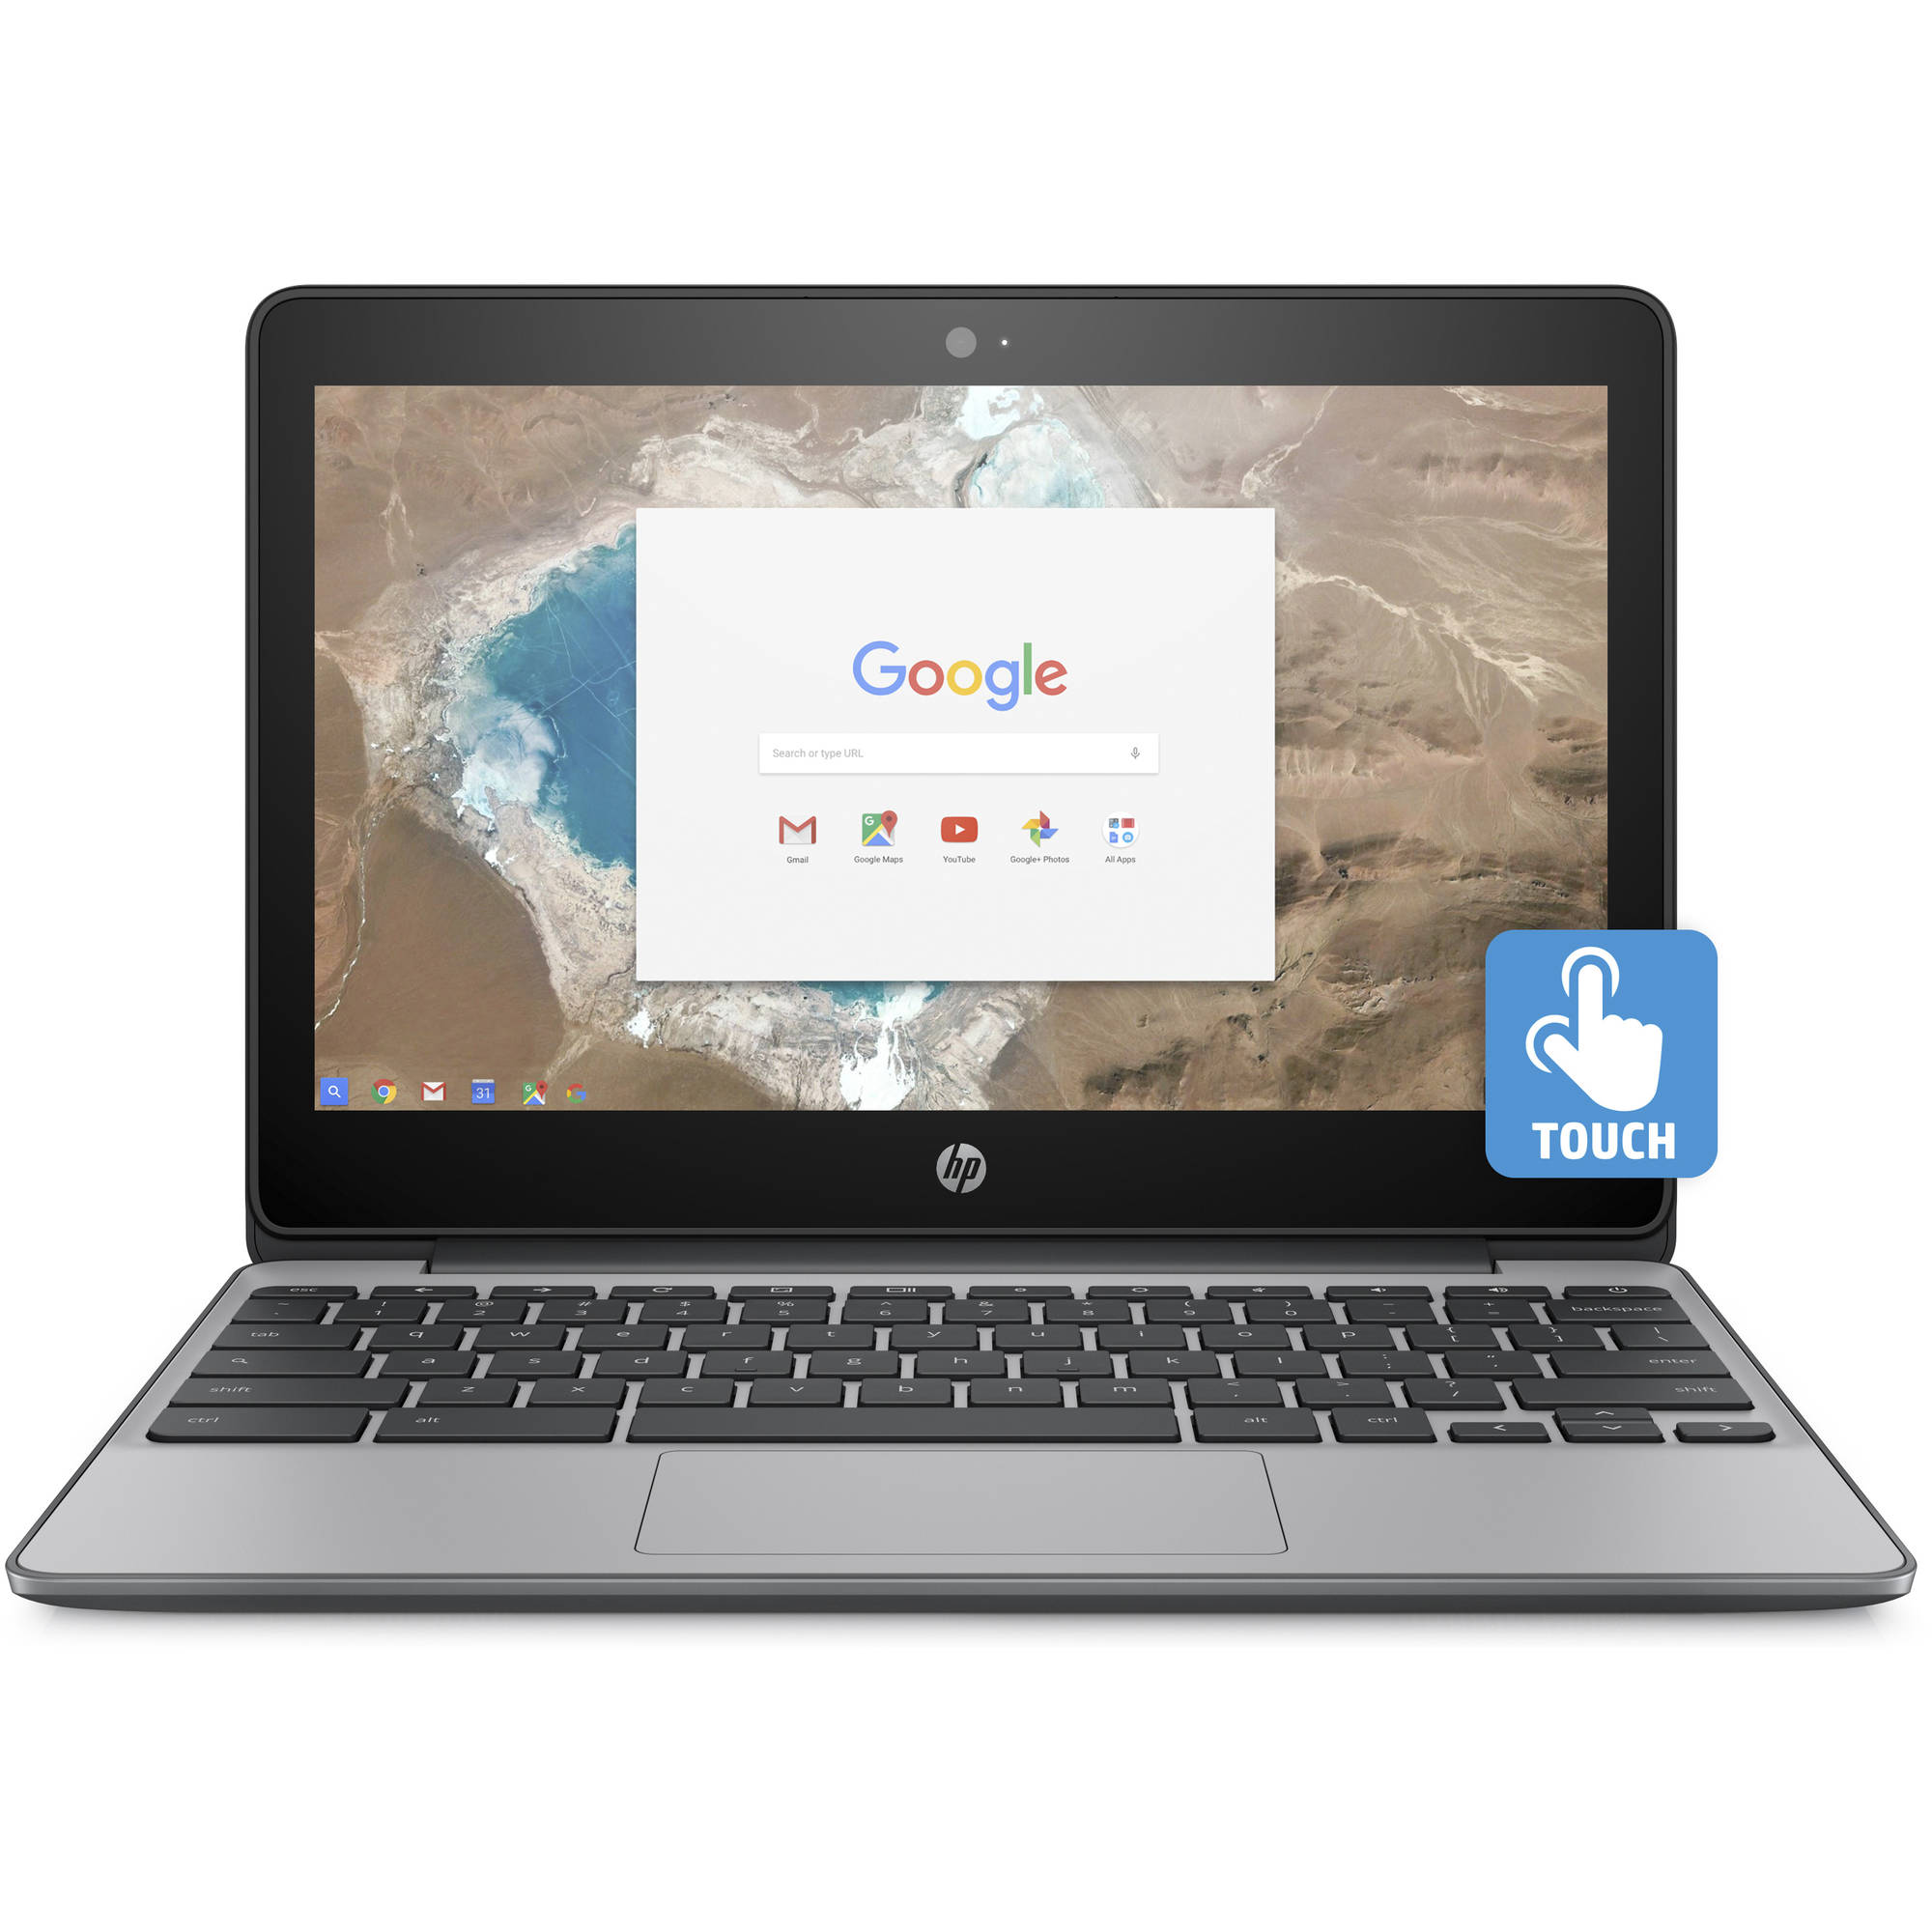 "HP 11-v020wm 11.6"" Chromebook, Corning Gorilla Glass Touchscreen, Chrome, Intel Celeron N3060 Processor, 4GB RAM, 16GB eMMC Drive"